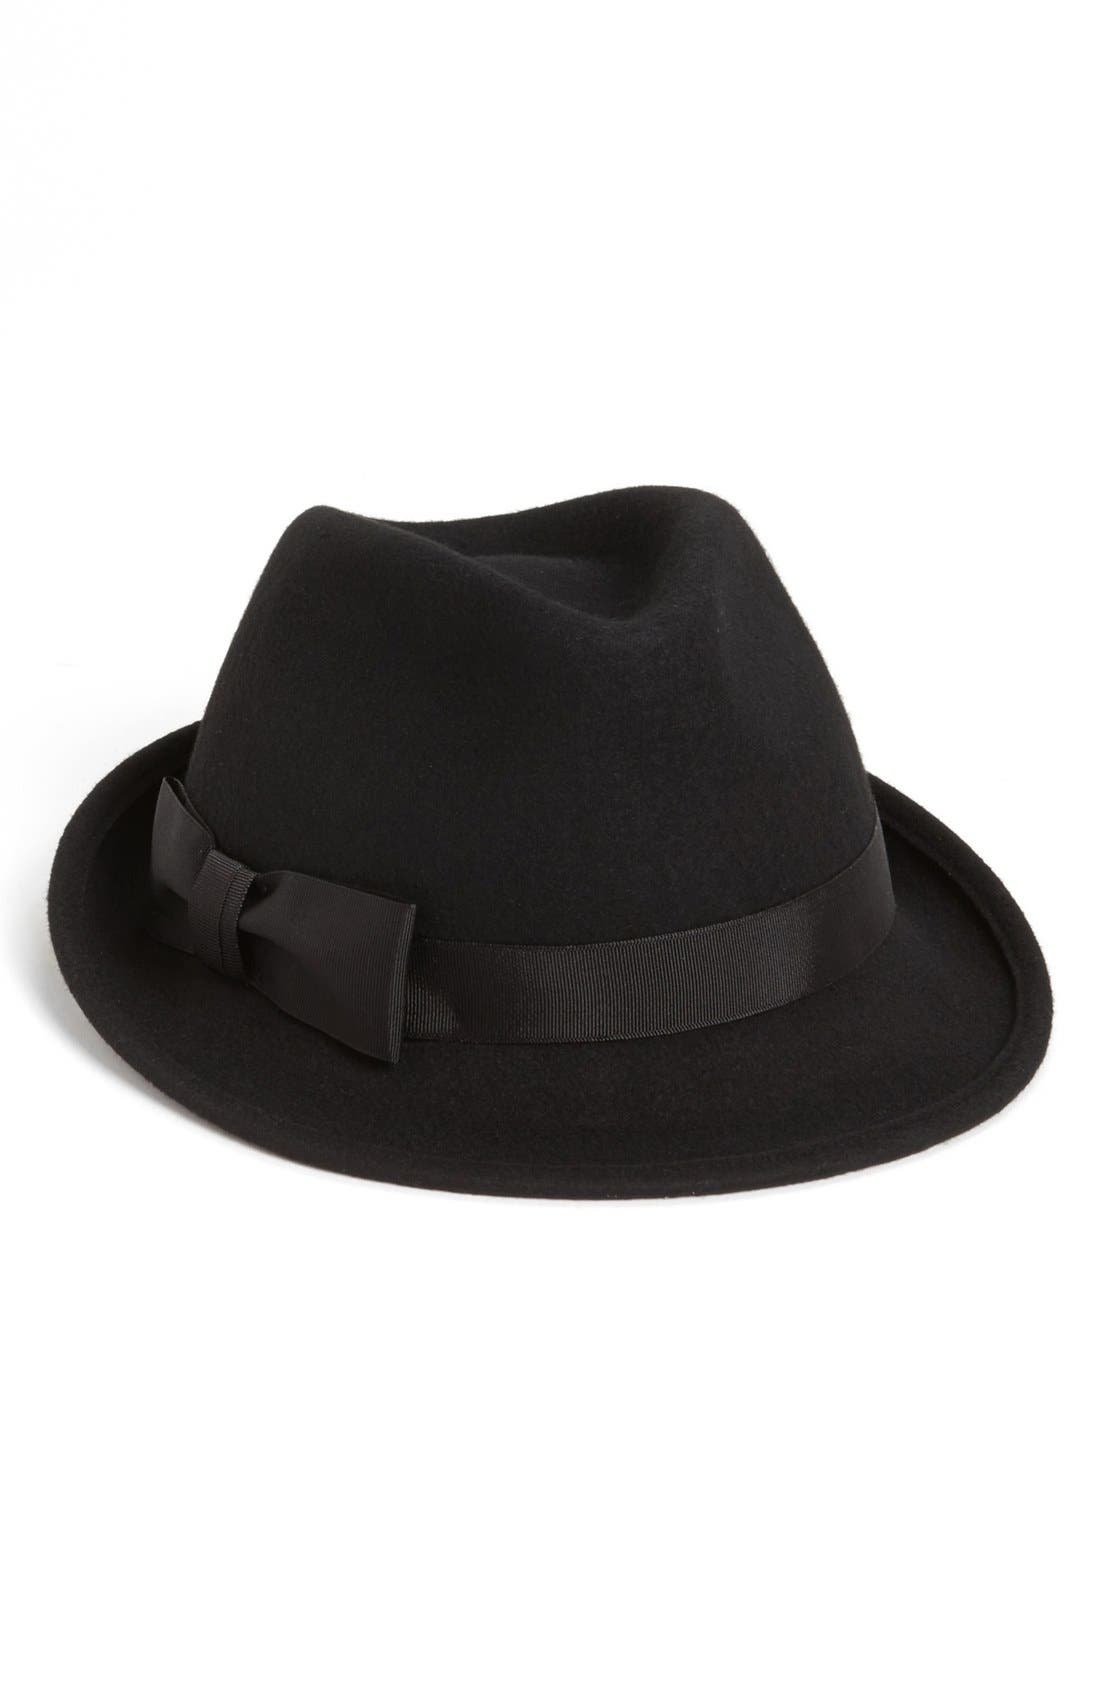 Alternate Image 2  - Nordstrom Wool Felt Trilby Hat